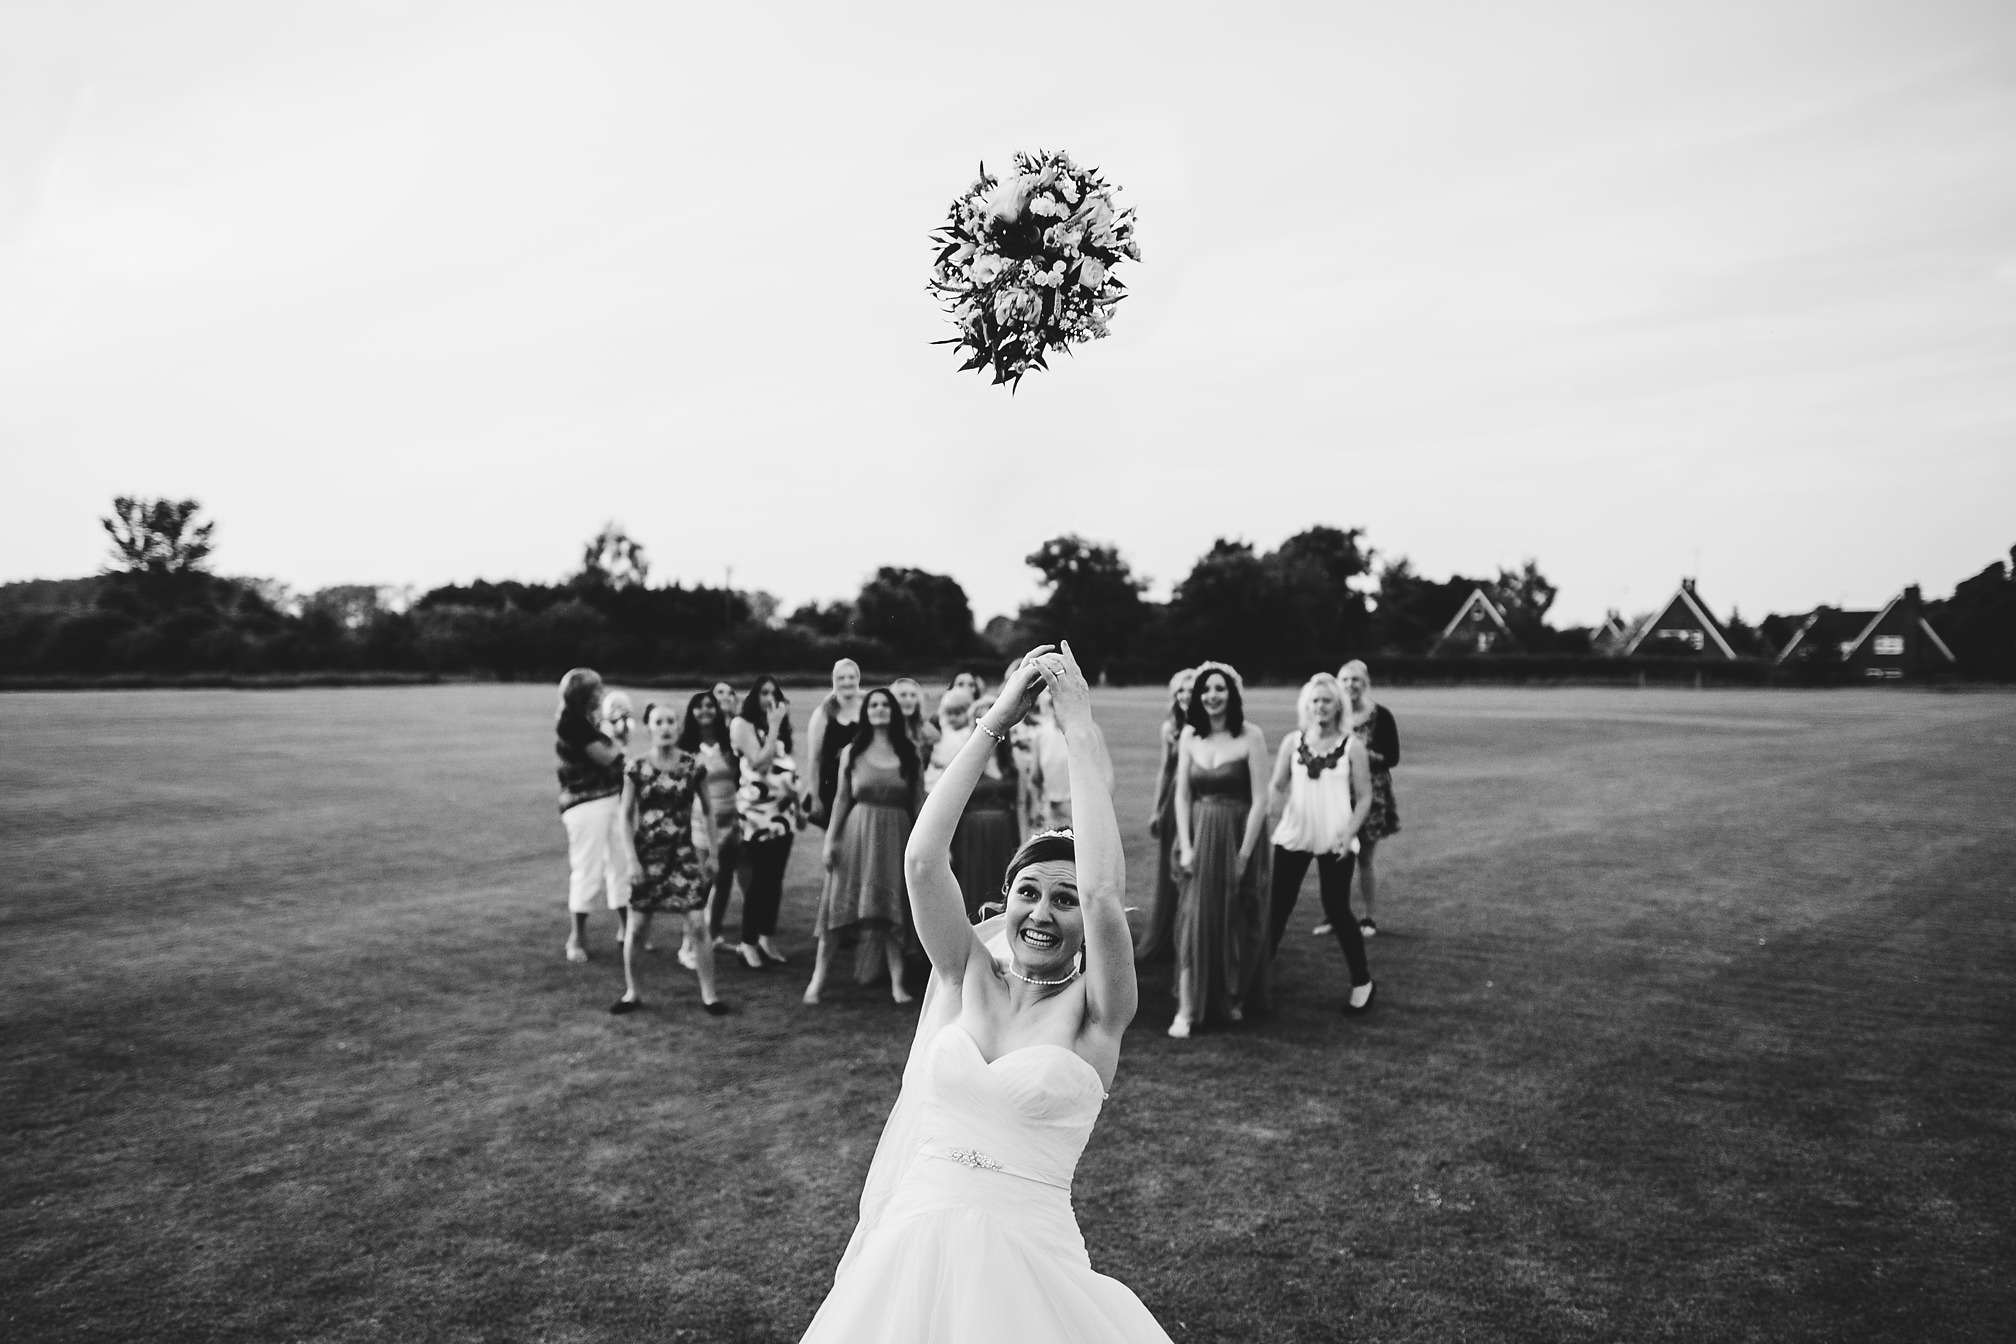 MyWed Editors Choice - Tossing the Bouquet